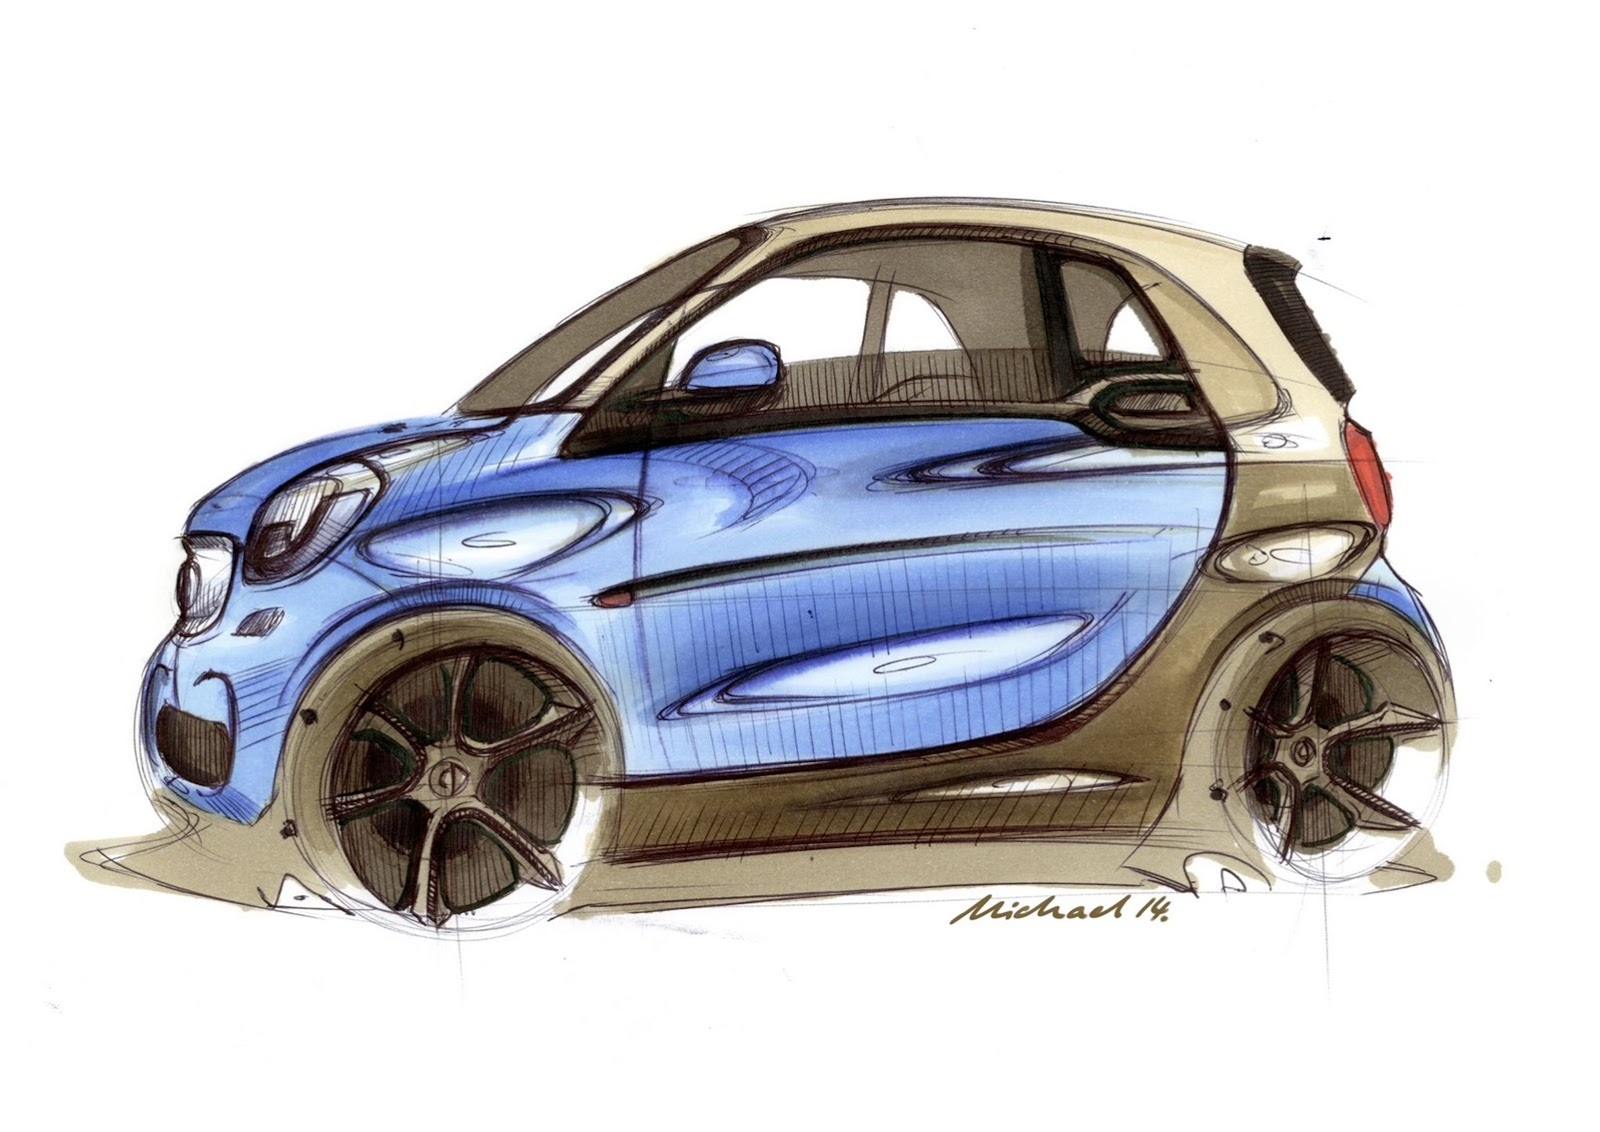 Tiguan Facelift 2019 >> New smart fortwo Design Revealed by Leaked Sketches - autoevolution